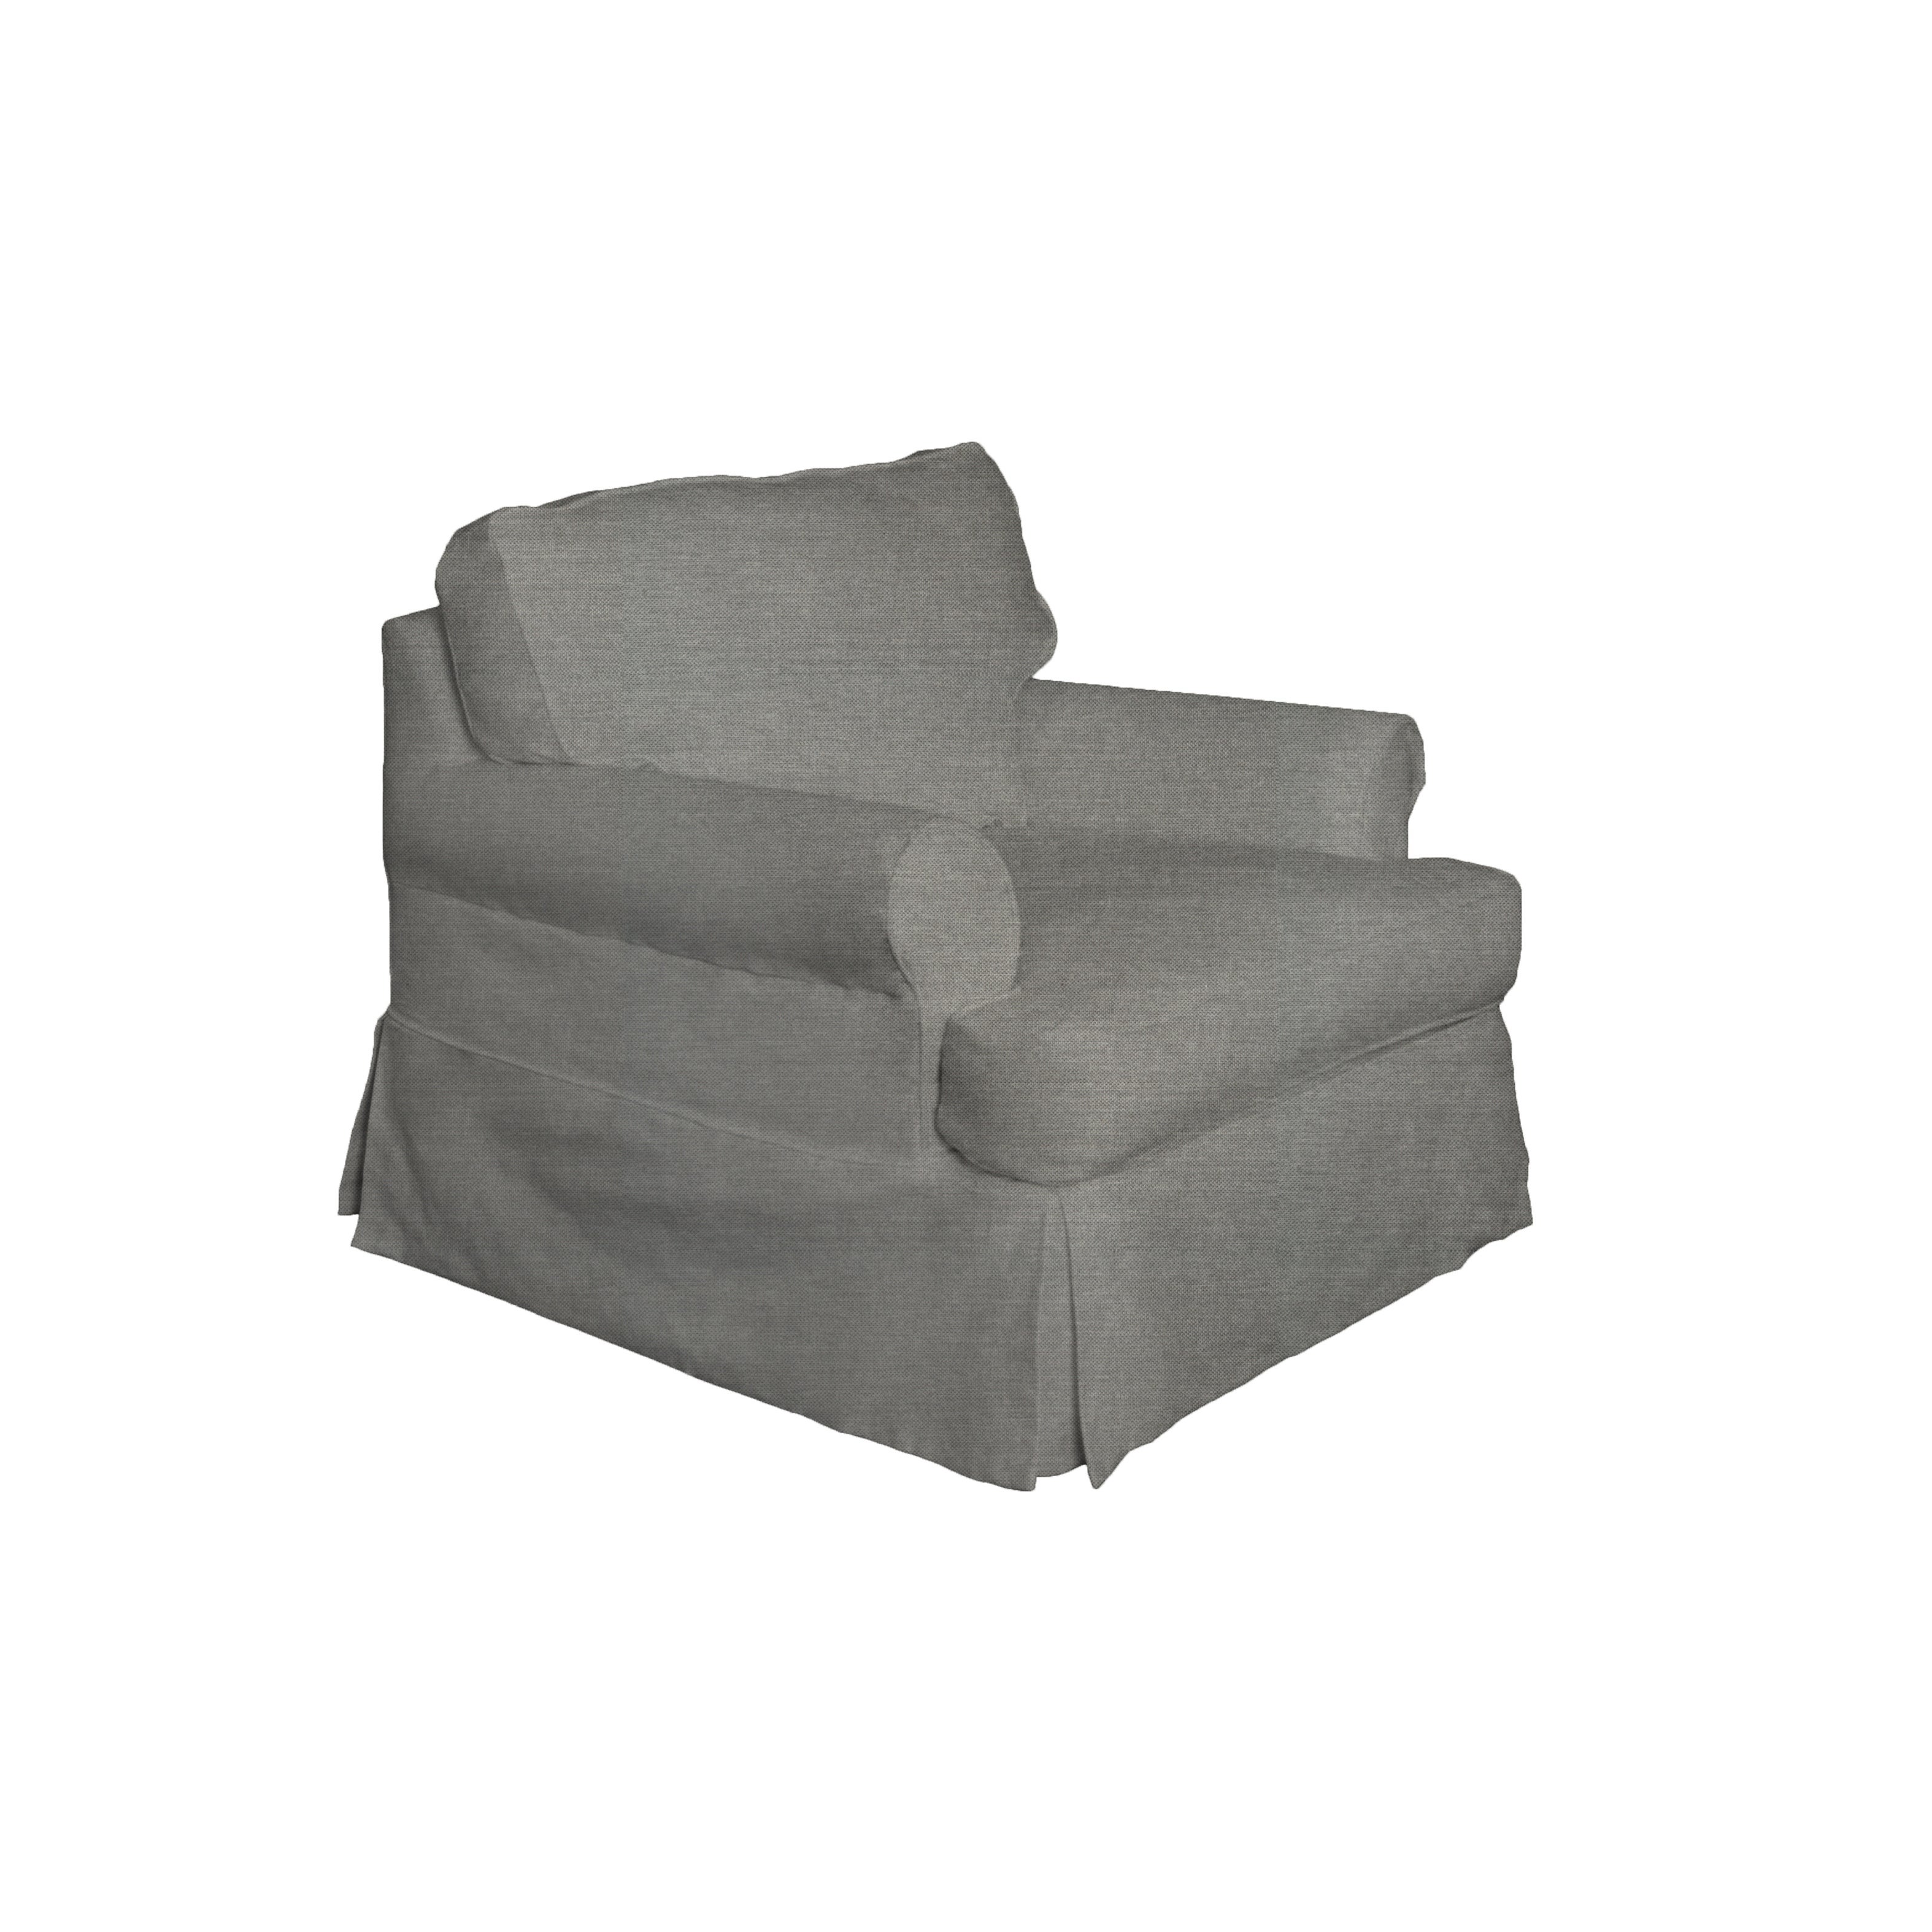 Shop sunset trading horizon t cushion chair slipcover free shipping today overstock com 25744553